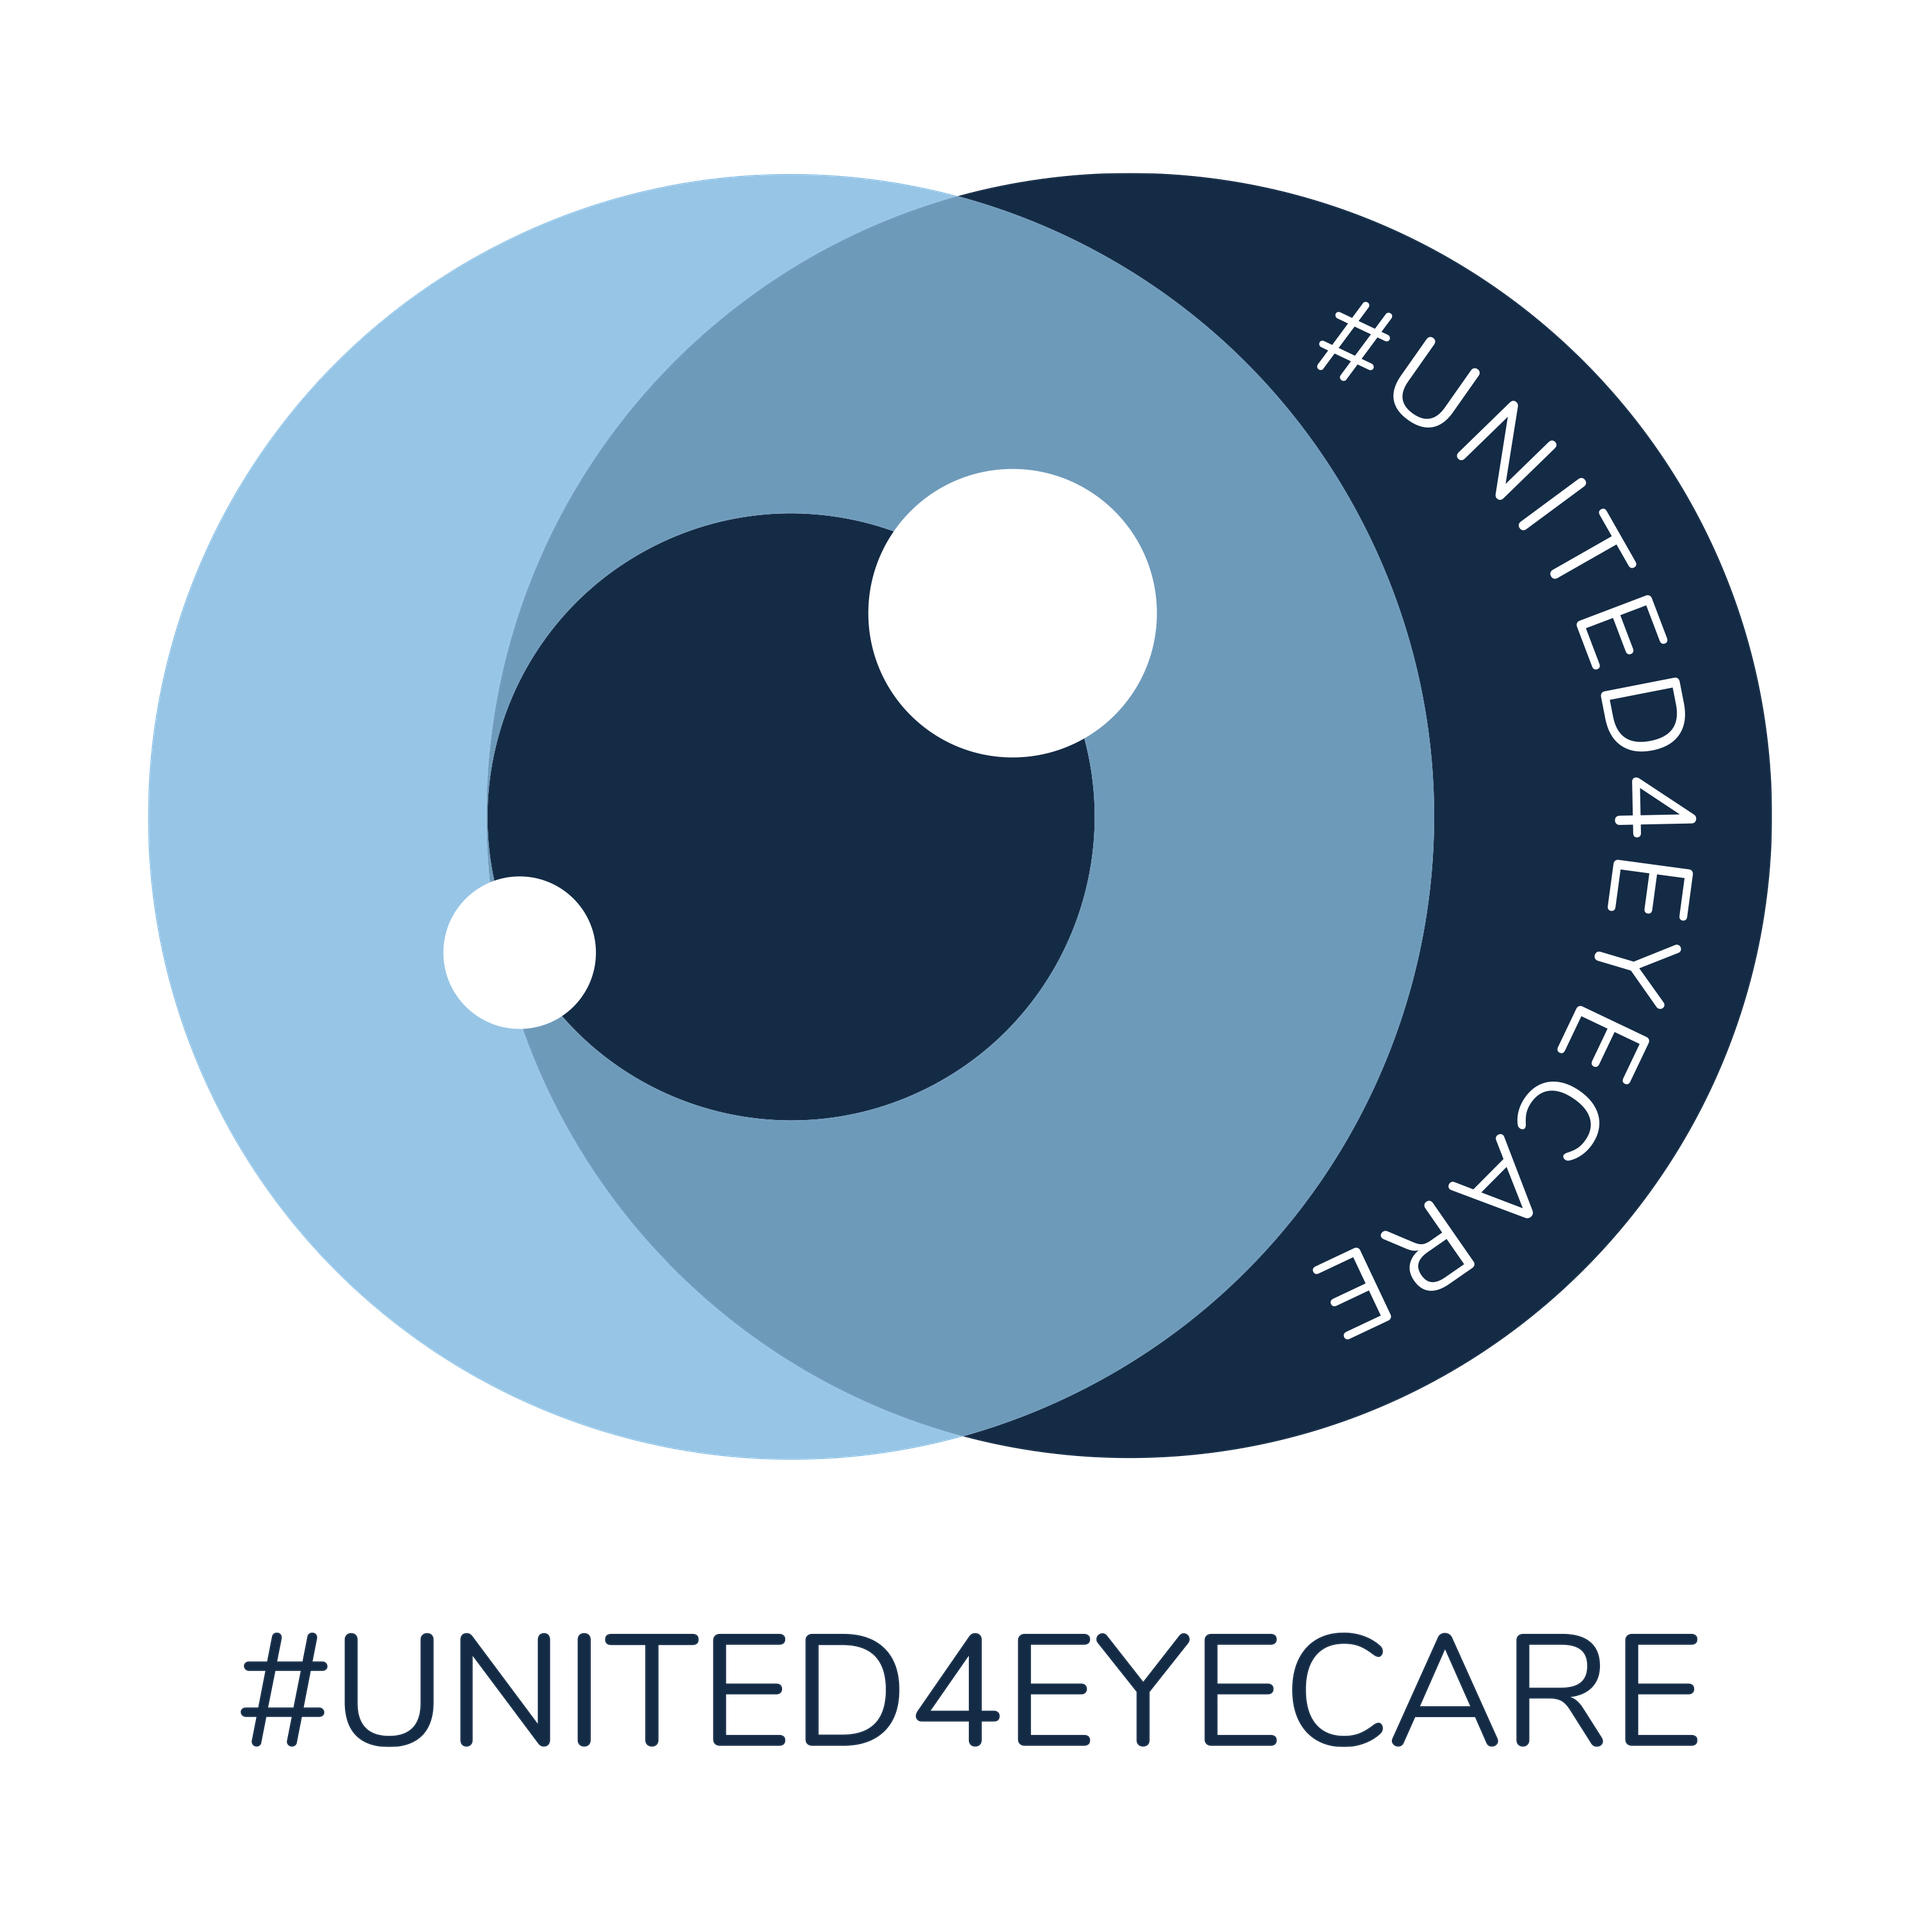 Safilo launches #united4eyecare during COVID-19 pandemic